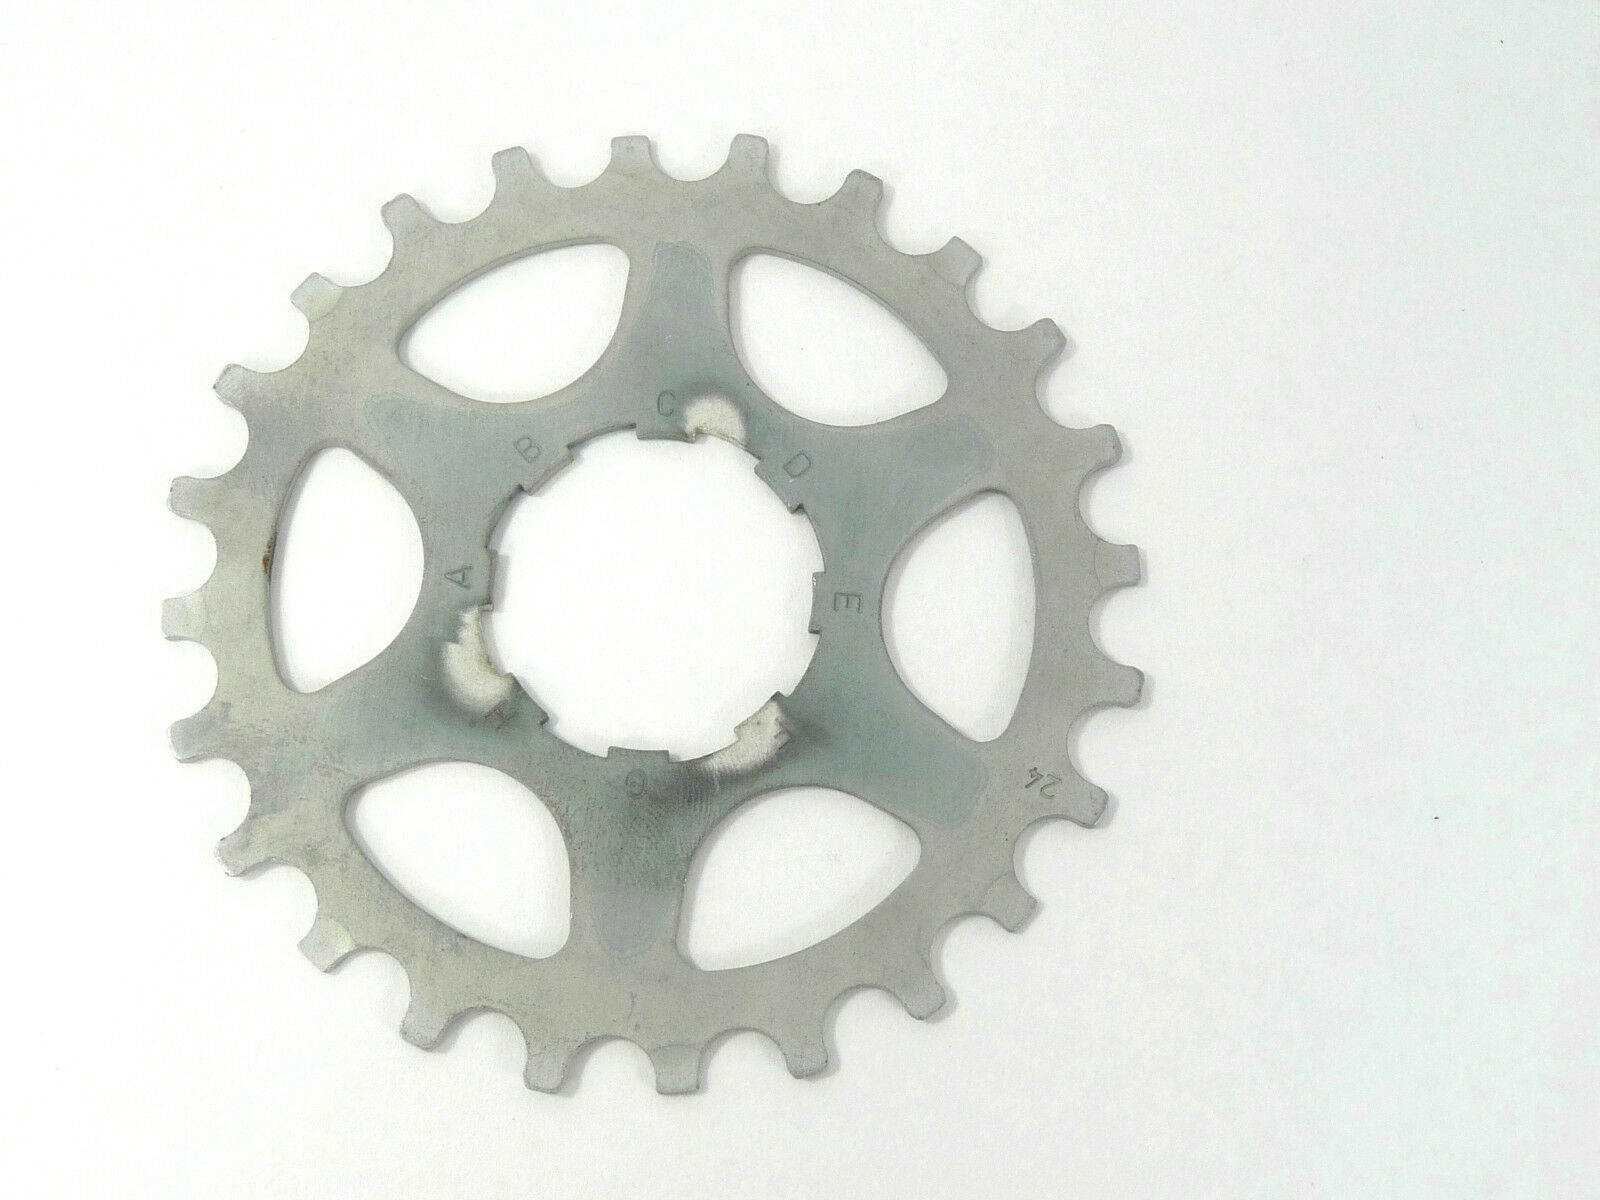 Campagnolo Record cassette cog 24 tooth Alloy Vintage 7 8 speed Bicycle mtb NOS